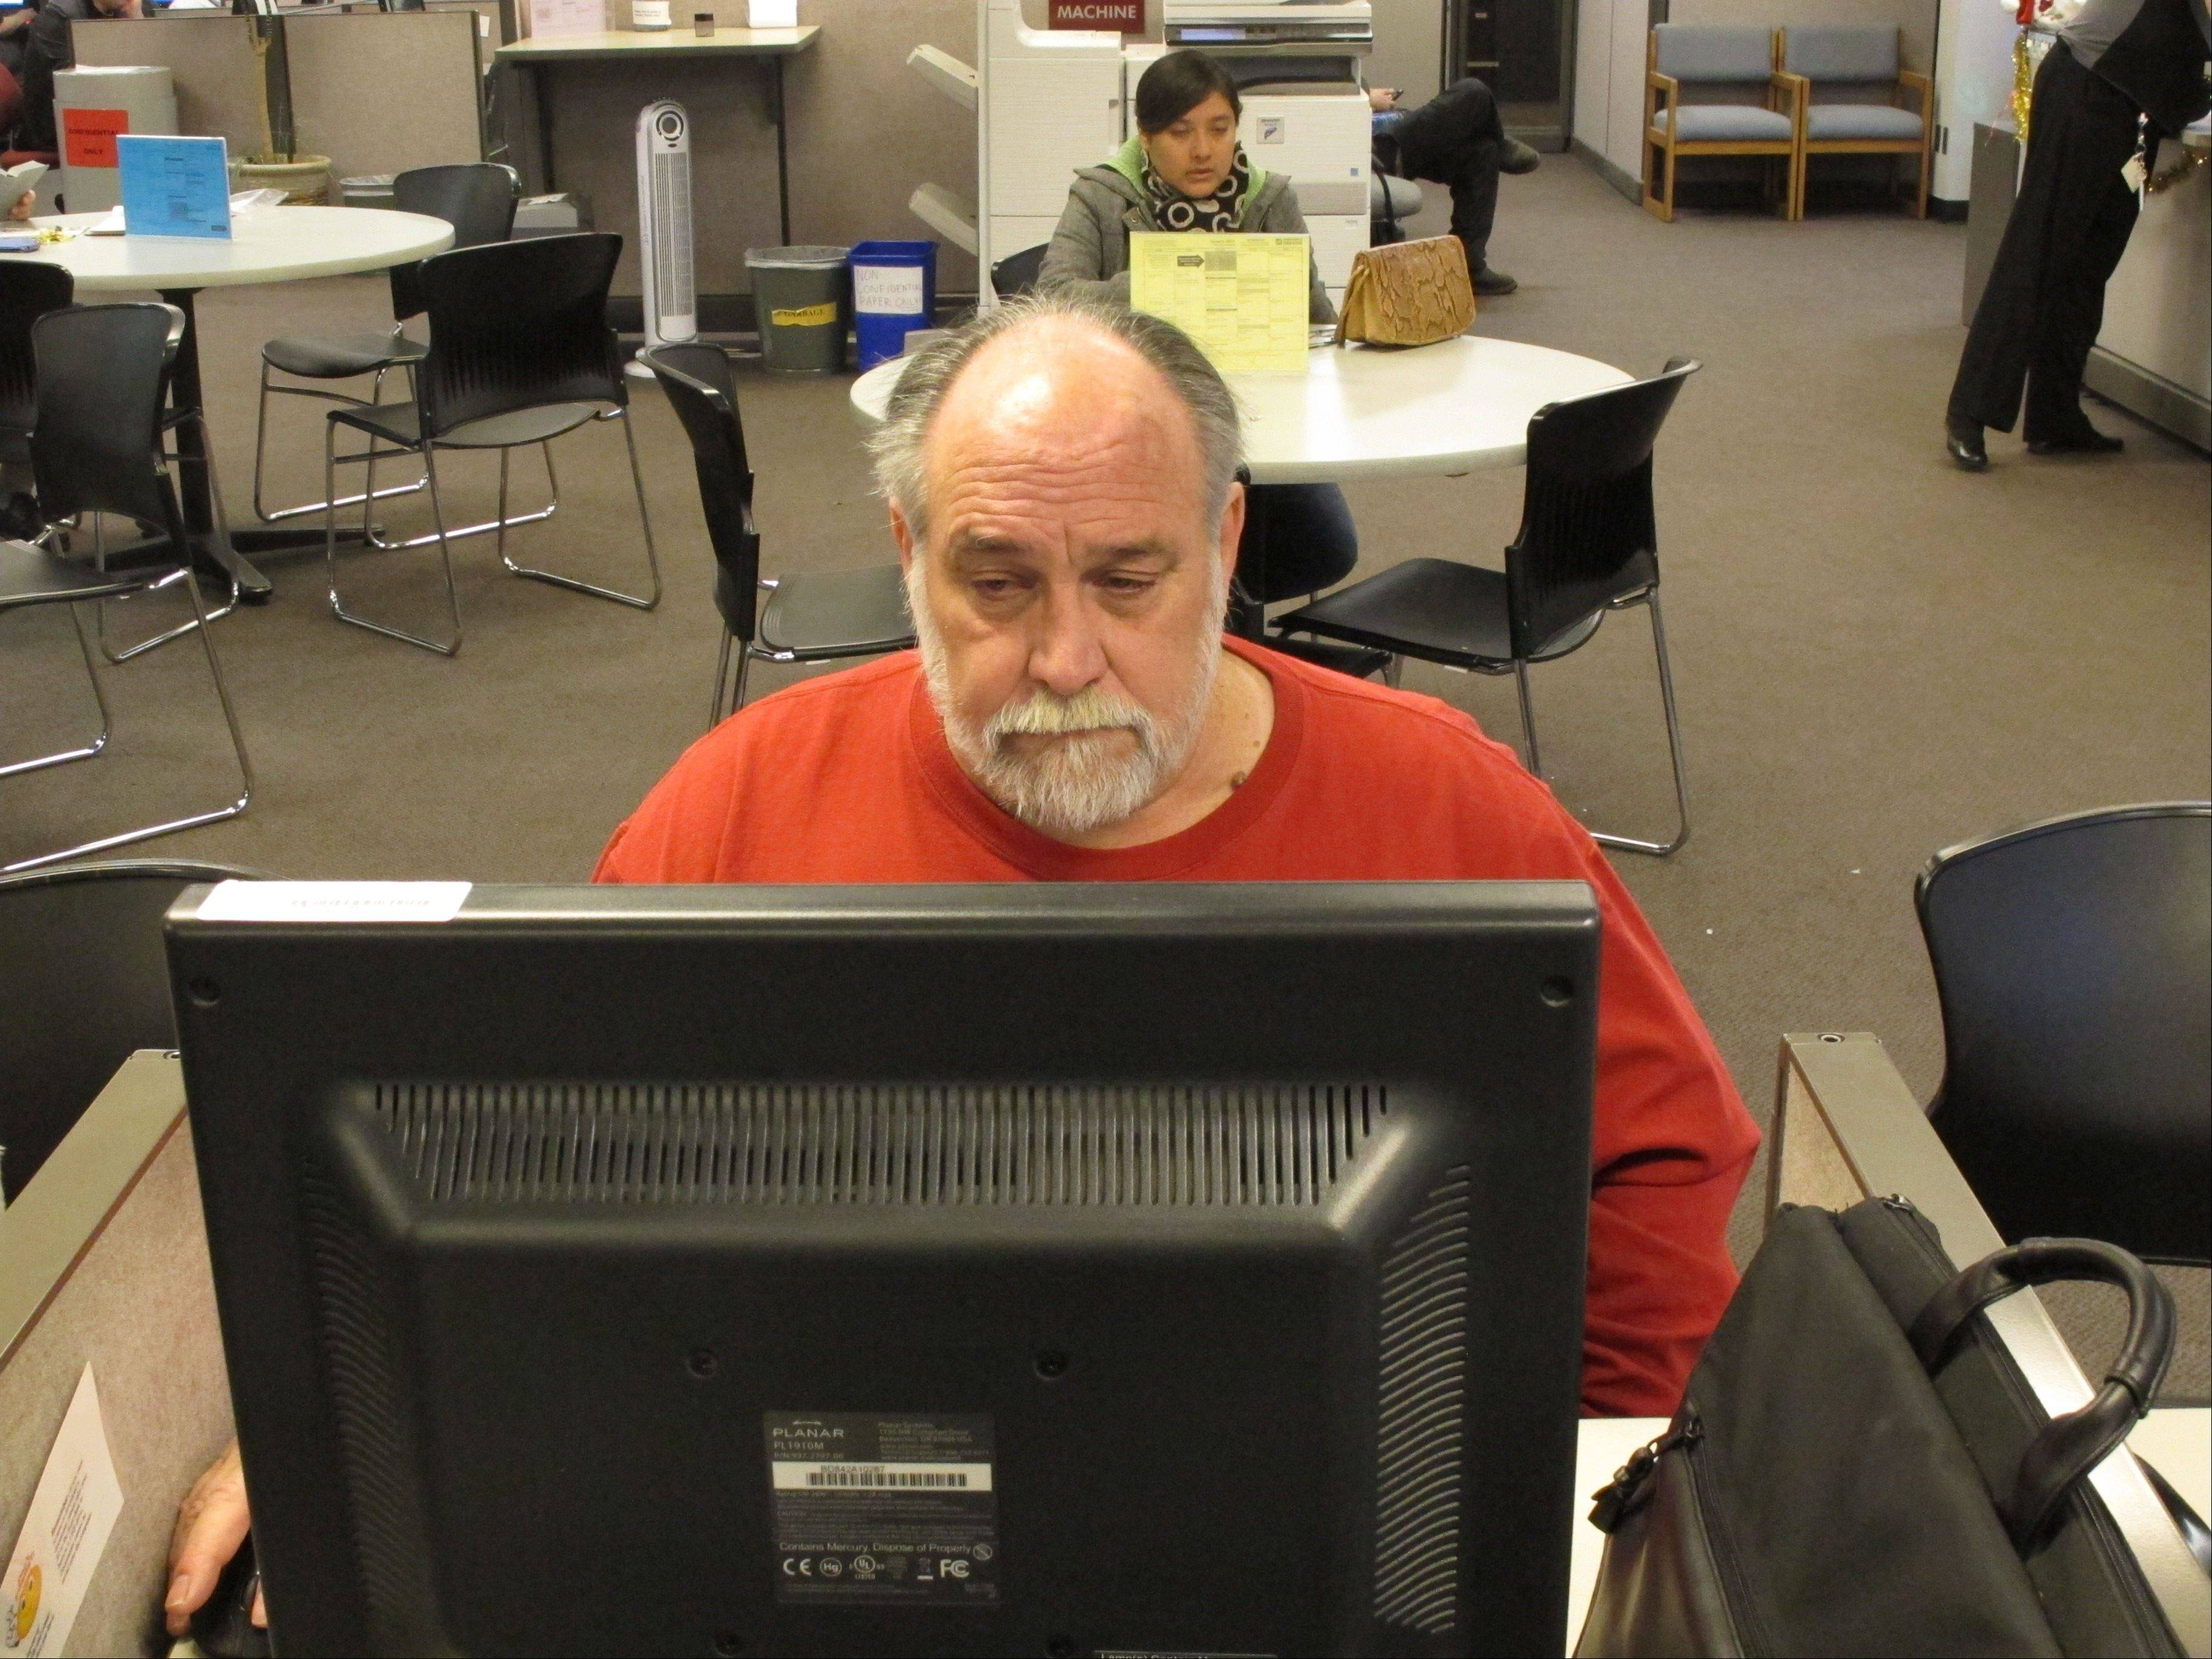 Richard Mattos, 59, looks for jobs at a state-run employment center in Salem, Ore., on Thursday. Mattos is one of more than 1 million Americans who are losing federal unemployment benefits at year's end.